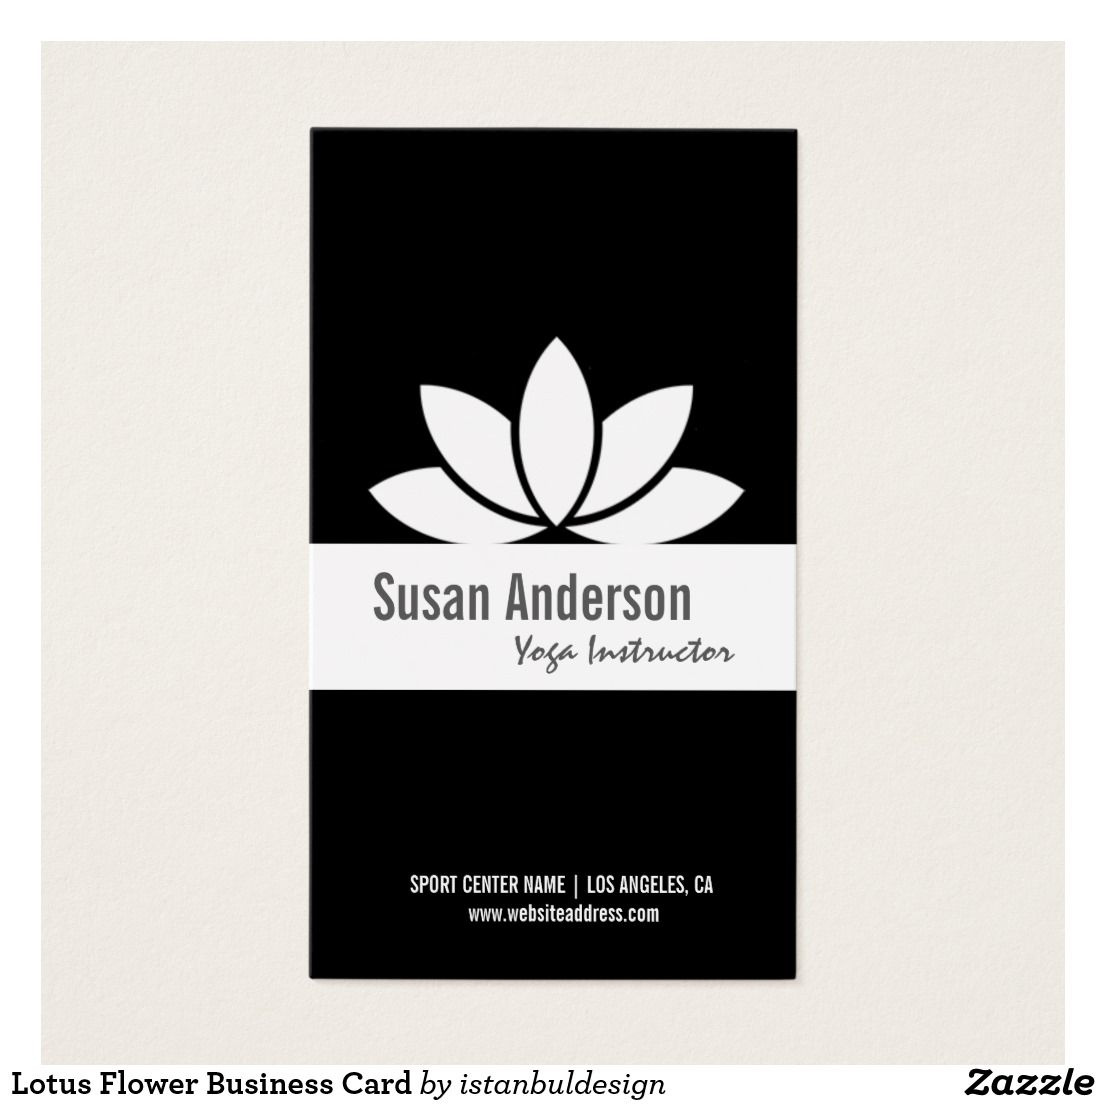 Lotus Flower Business Card | Business cards